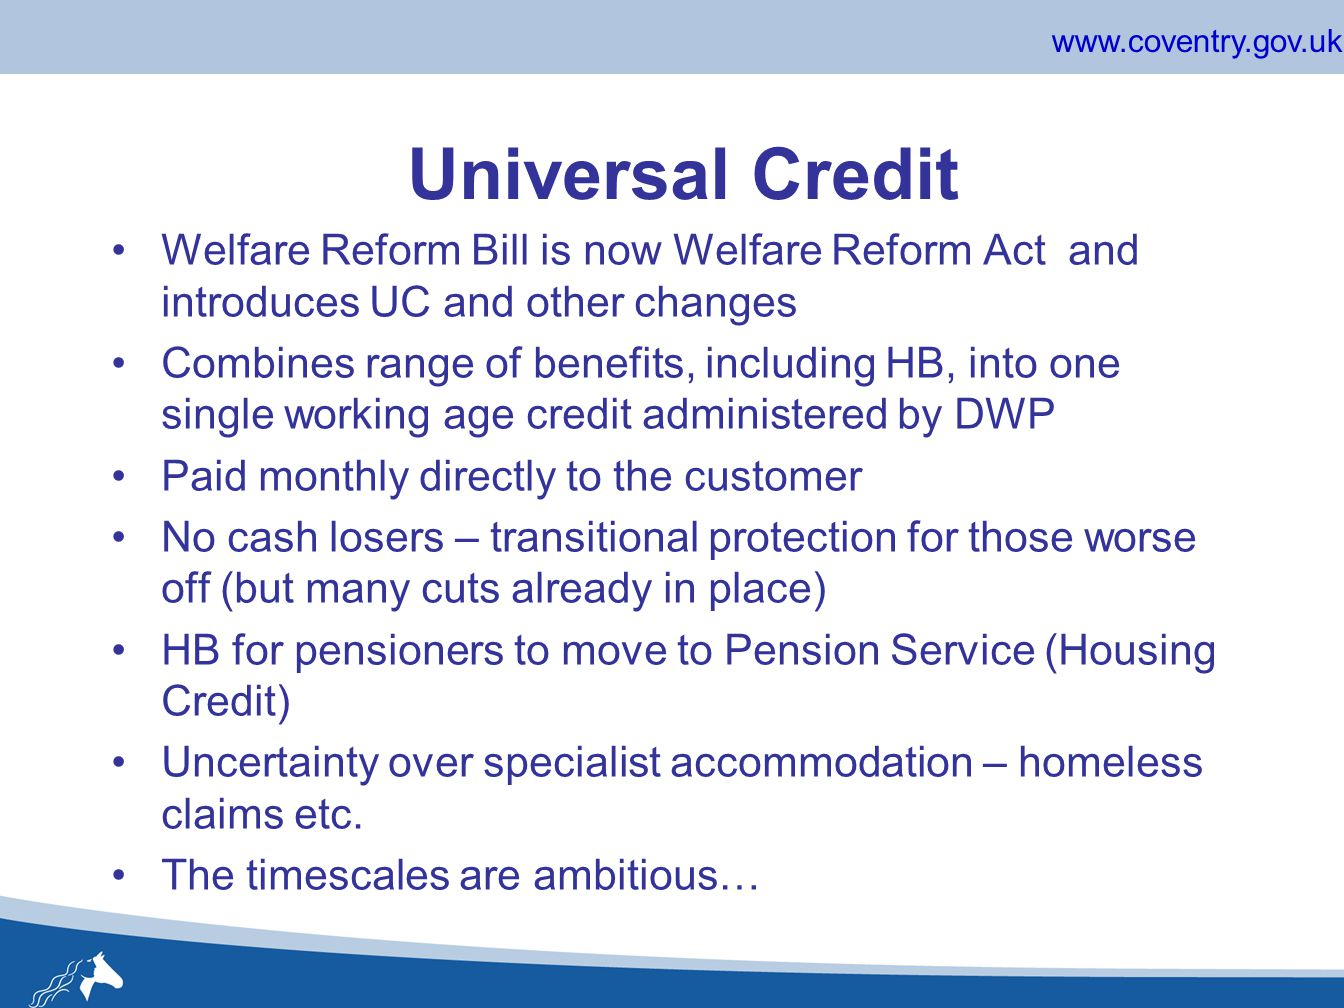 www.coventry.gov.uk Universal Credit Welfare Reform Bill is now Welfare Reform Act and introduces UC and other changes Combines range of benefits, including HB, into one single working age credit administered by DWP Paid monthly directly to the customer No cash losers – transitional protection for those worse off (but many cuts already in place) HB for pensioners to move to Pension Service (Housing Credit) Uncertainty over specialist accommodation – homeless claims etc.